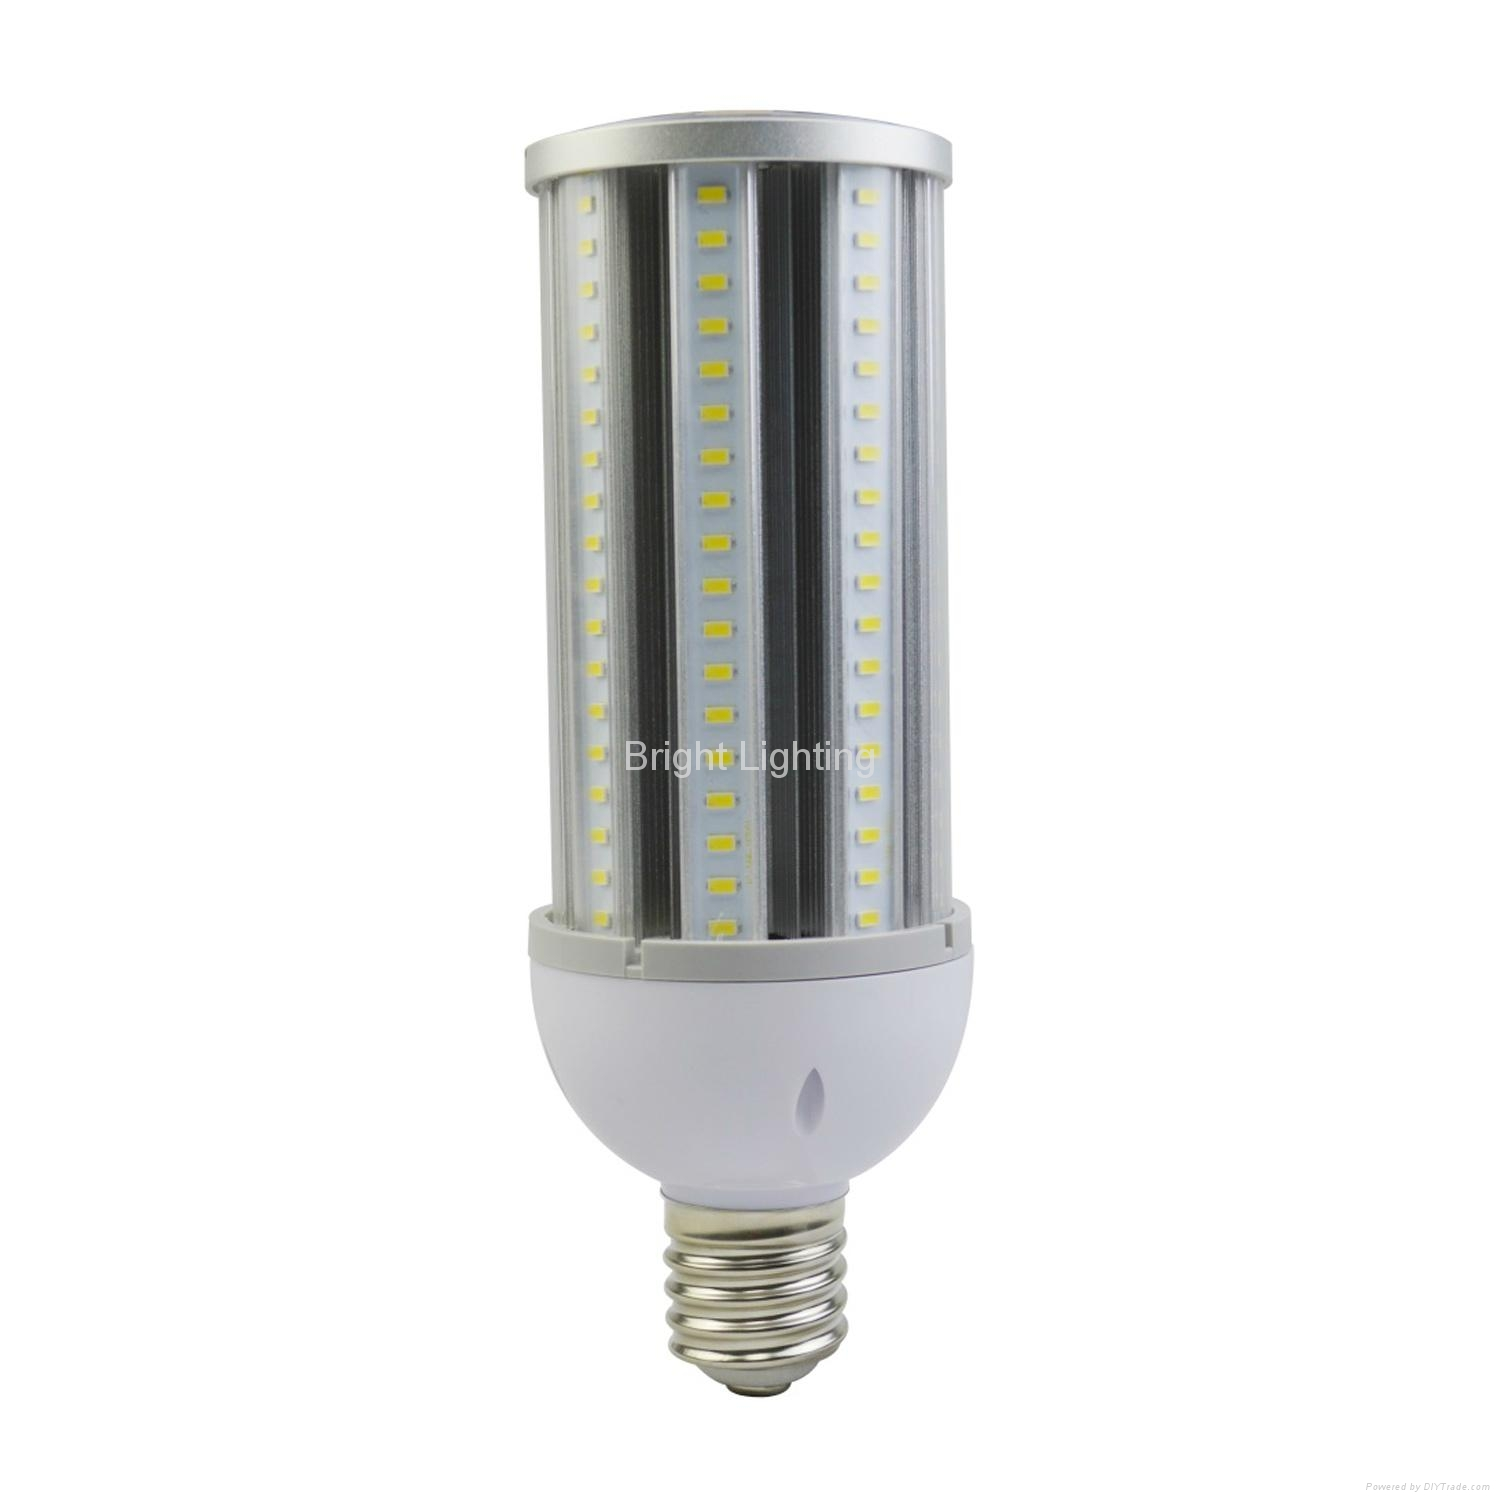 SMD2835 3528 waterproof LED corn light with 3 years warranty 1